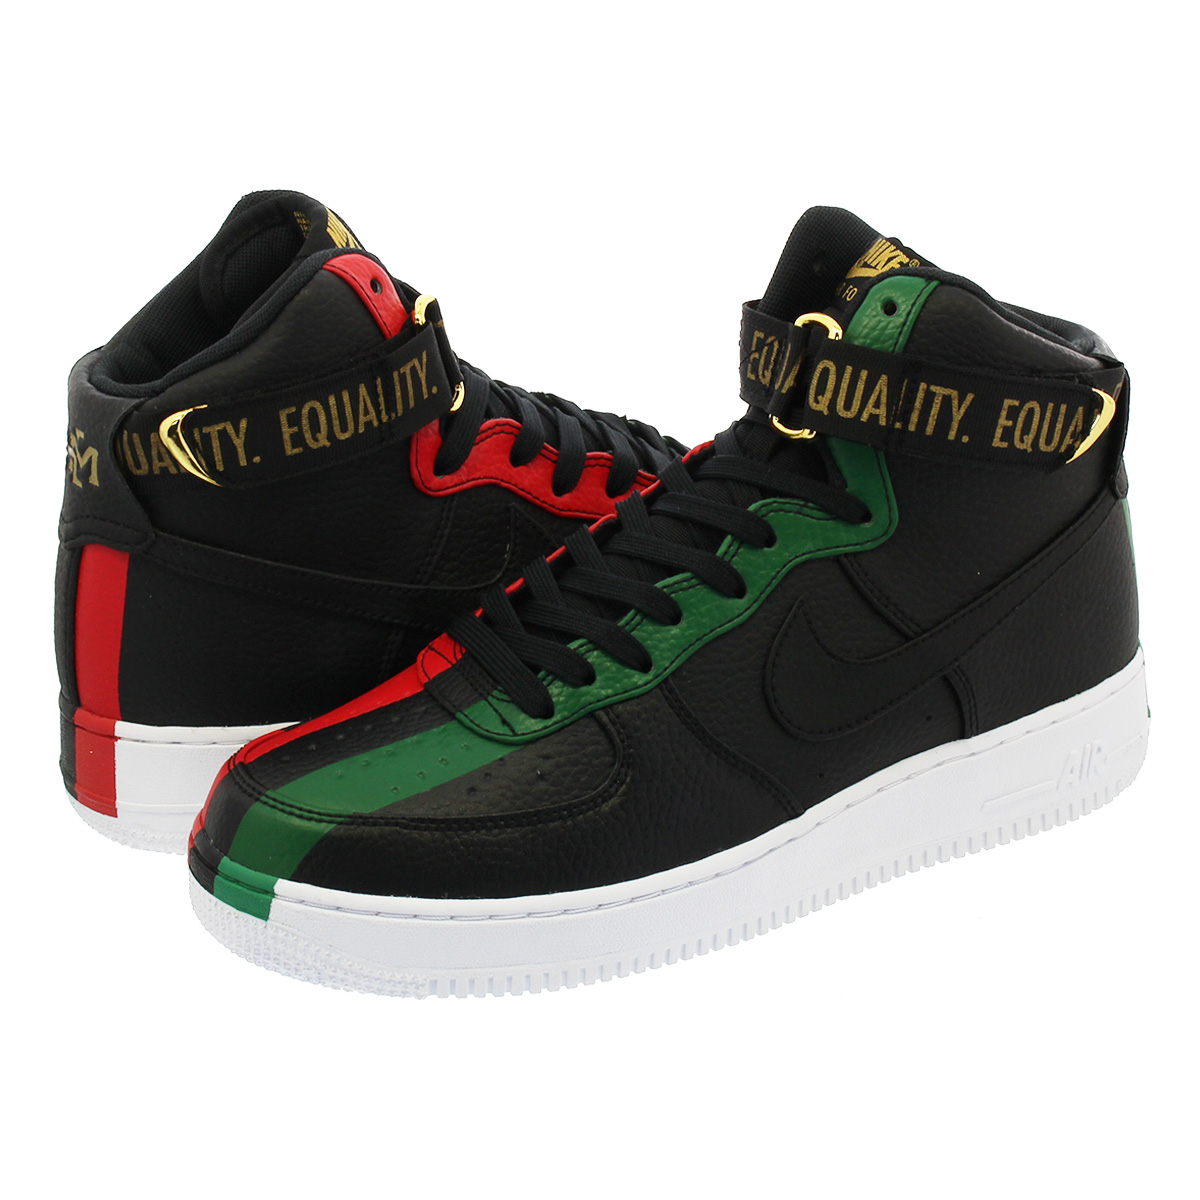 NIKE AIR FORCE 1 HIGH BHM 2018 Nike air force 1 high BHM 2018 BLACK UNIVERSITY  RED PINE GREEN 72601a96d